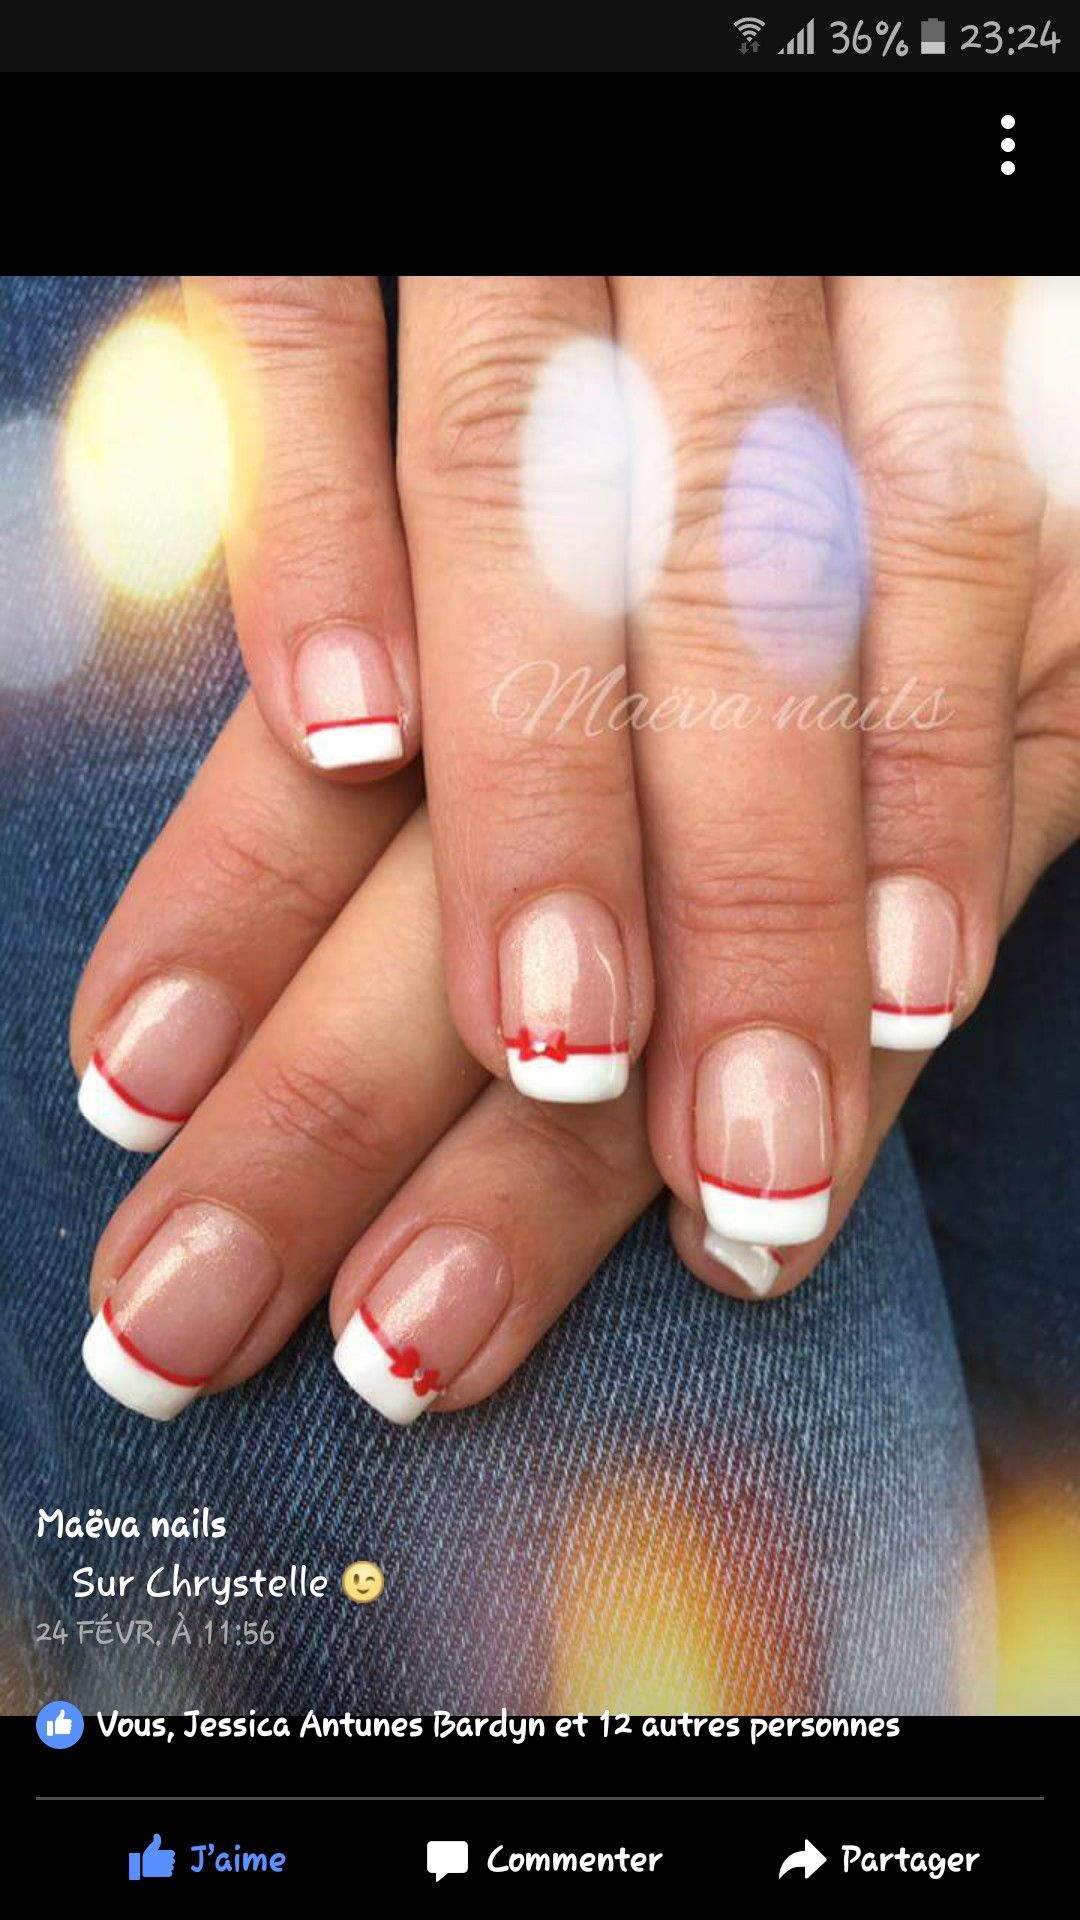 French Manucure Rouge Blanc Ongles Pour Mariage Manucure Rouge Manucure